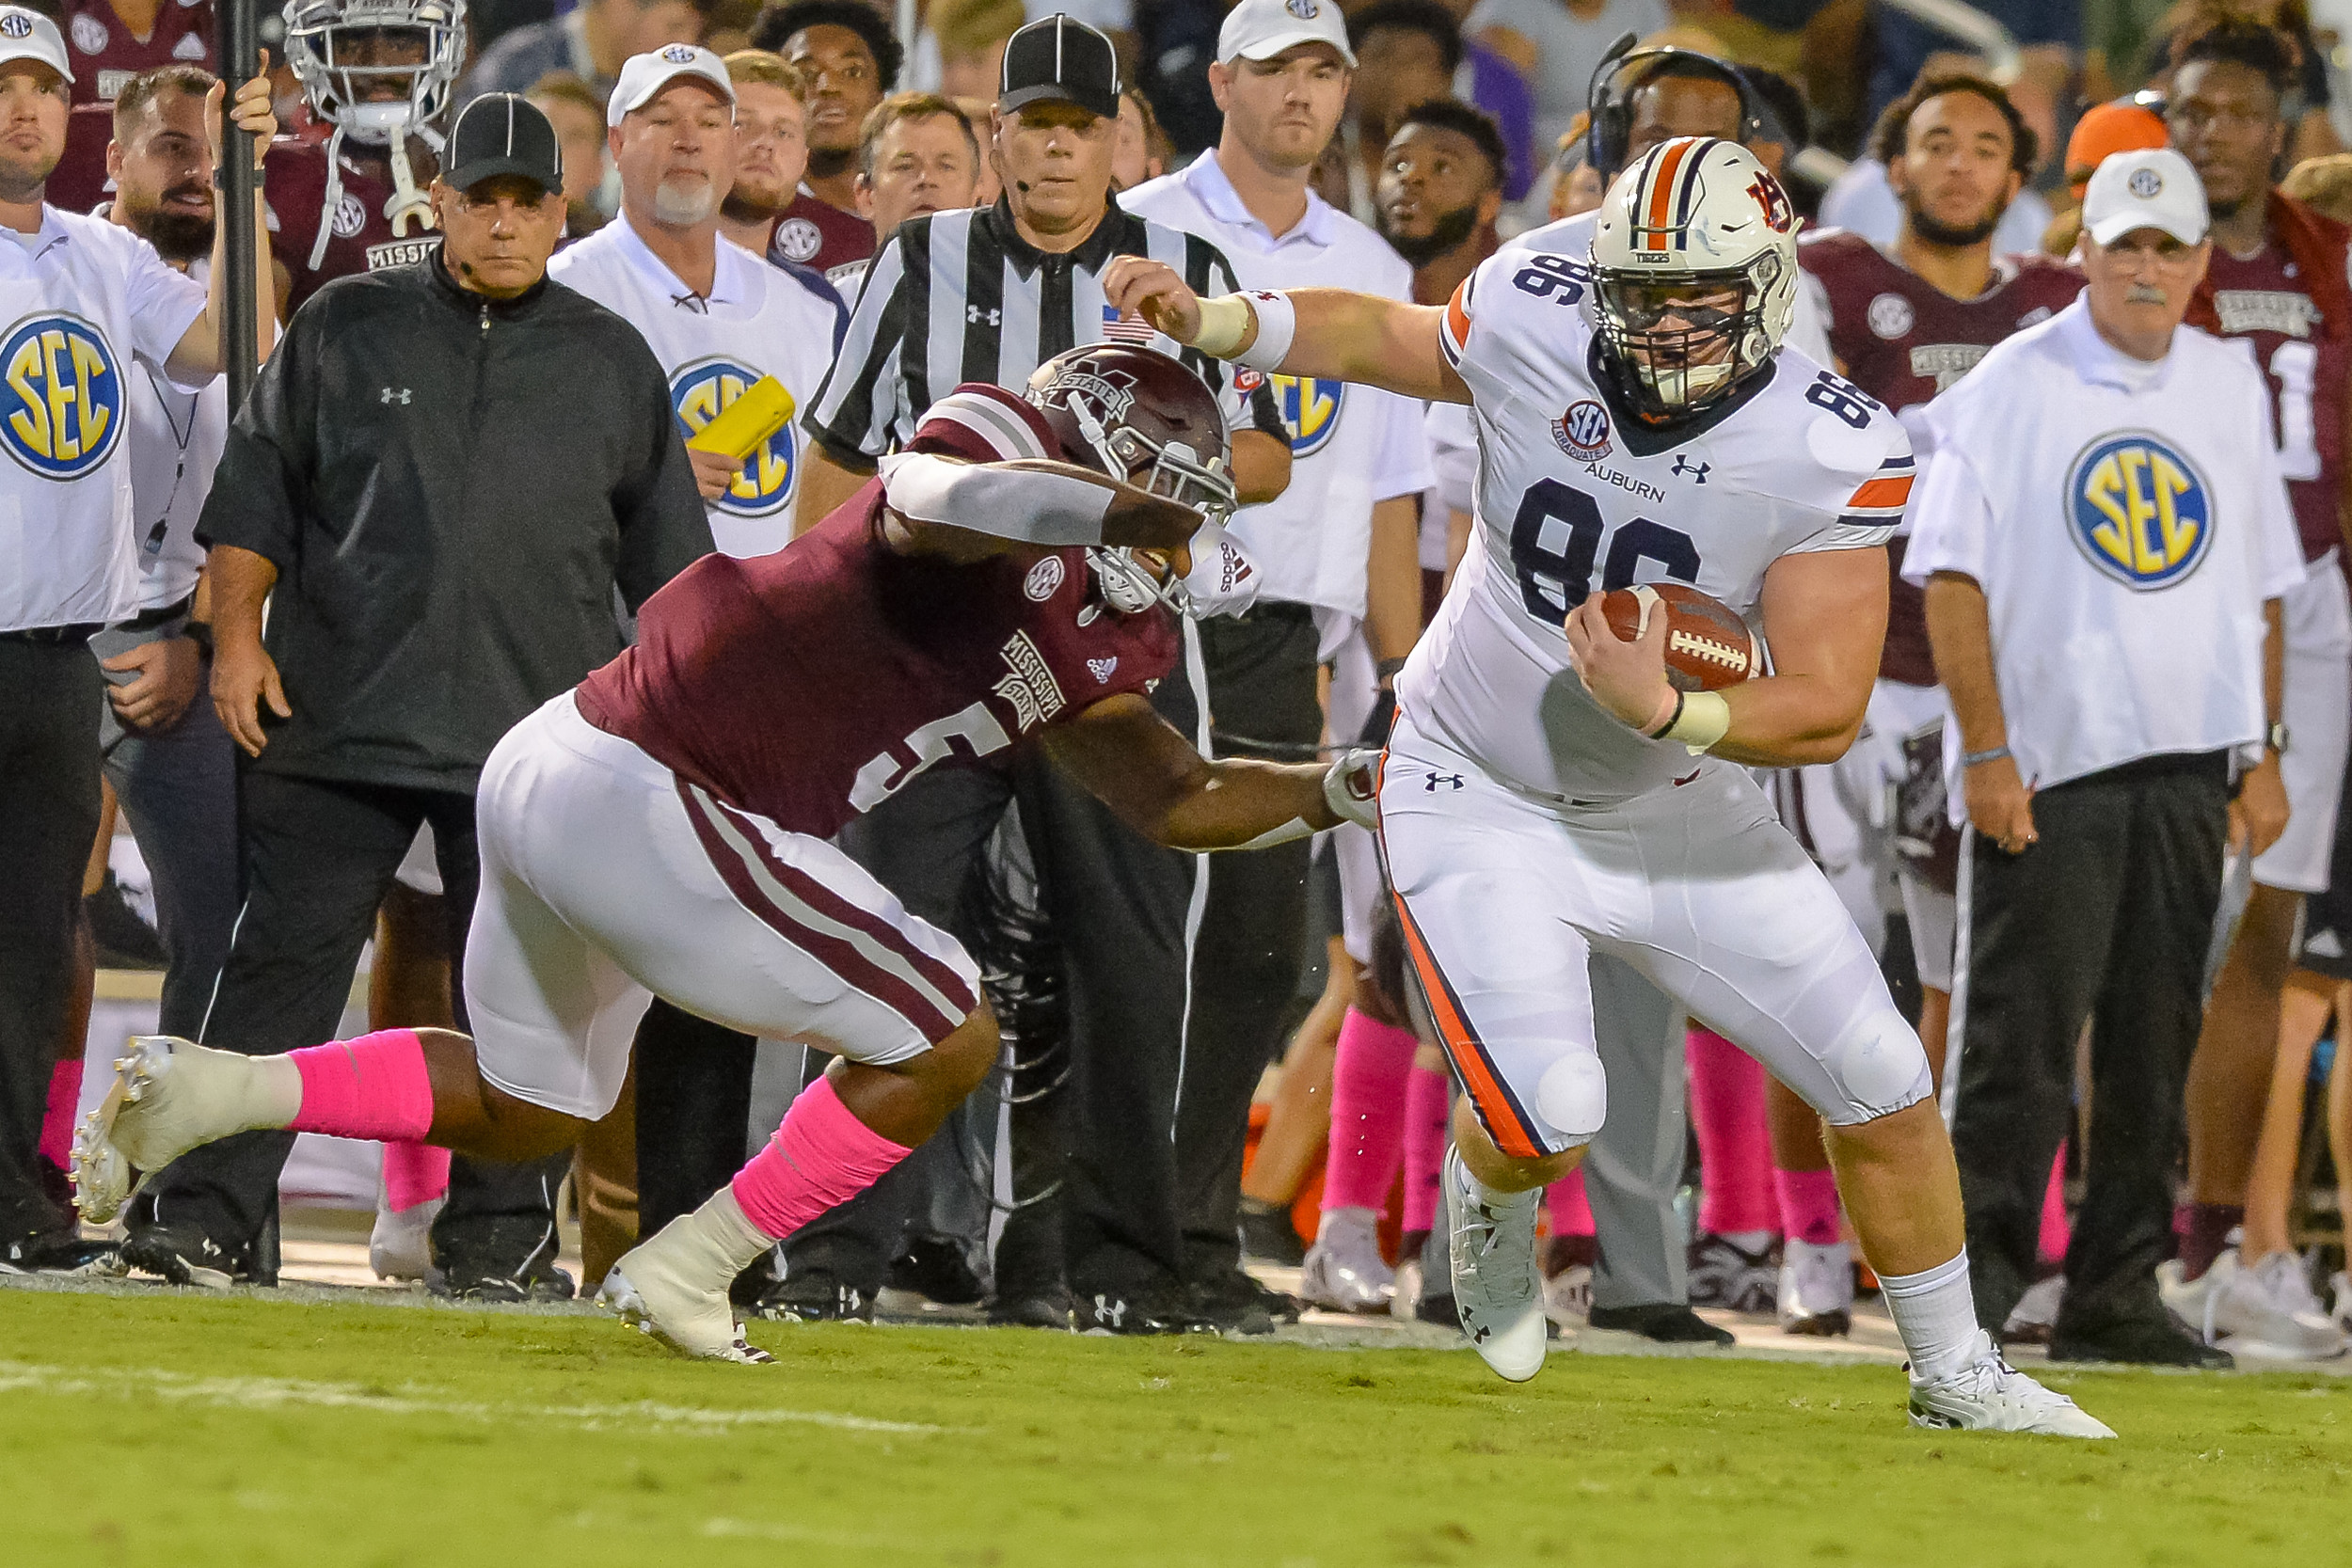 Auburn Tigers tight end Tucker Brown (86) heads upfield during the first half of Saturday's game, at Davis Wade Stadium in Starkville, MS. Daily Mountain Eagle -  Jeff Johnsey